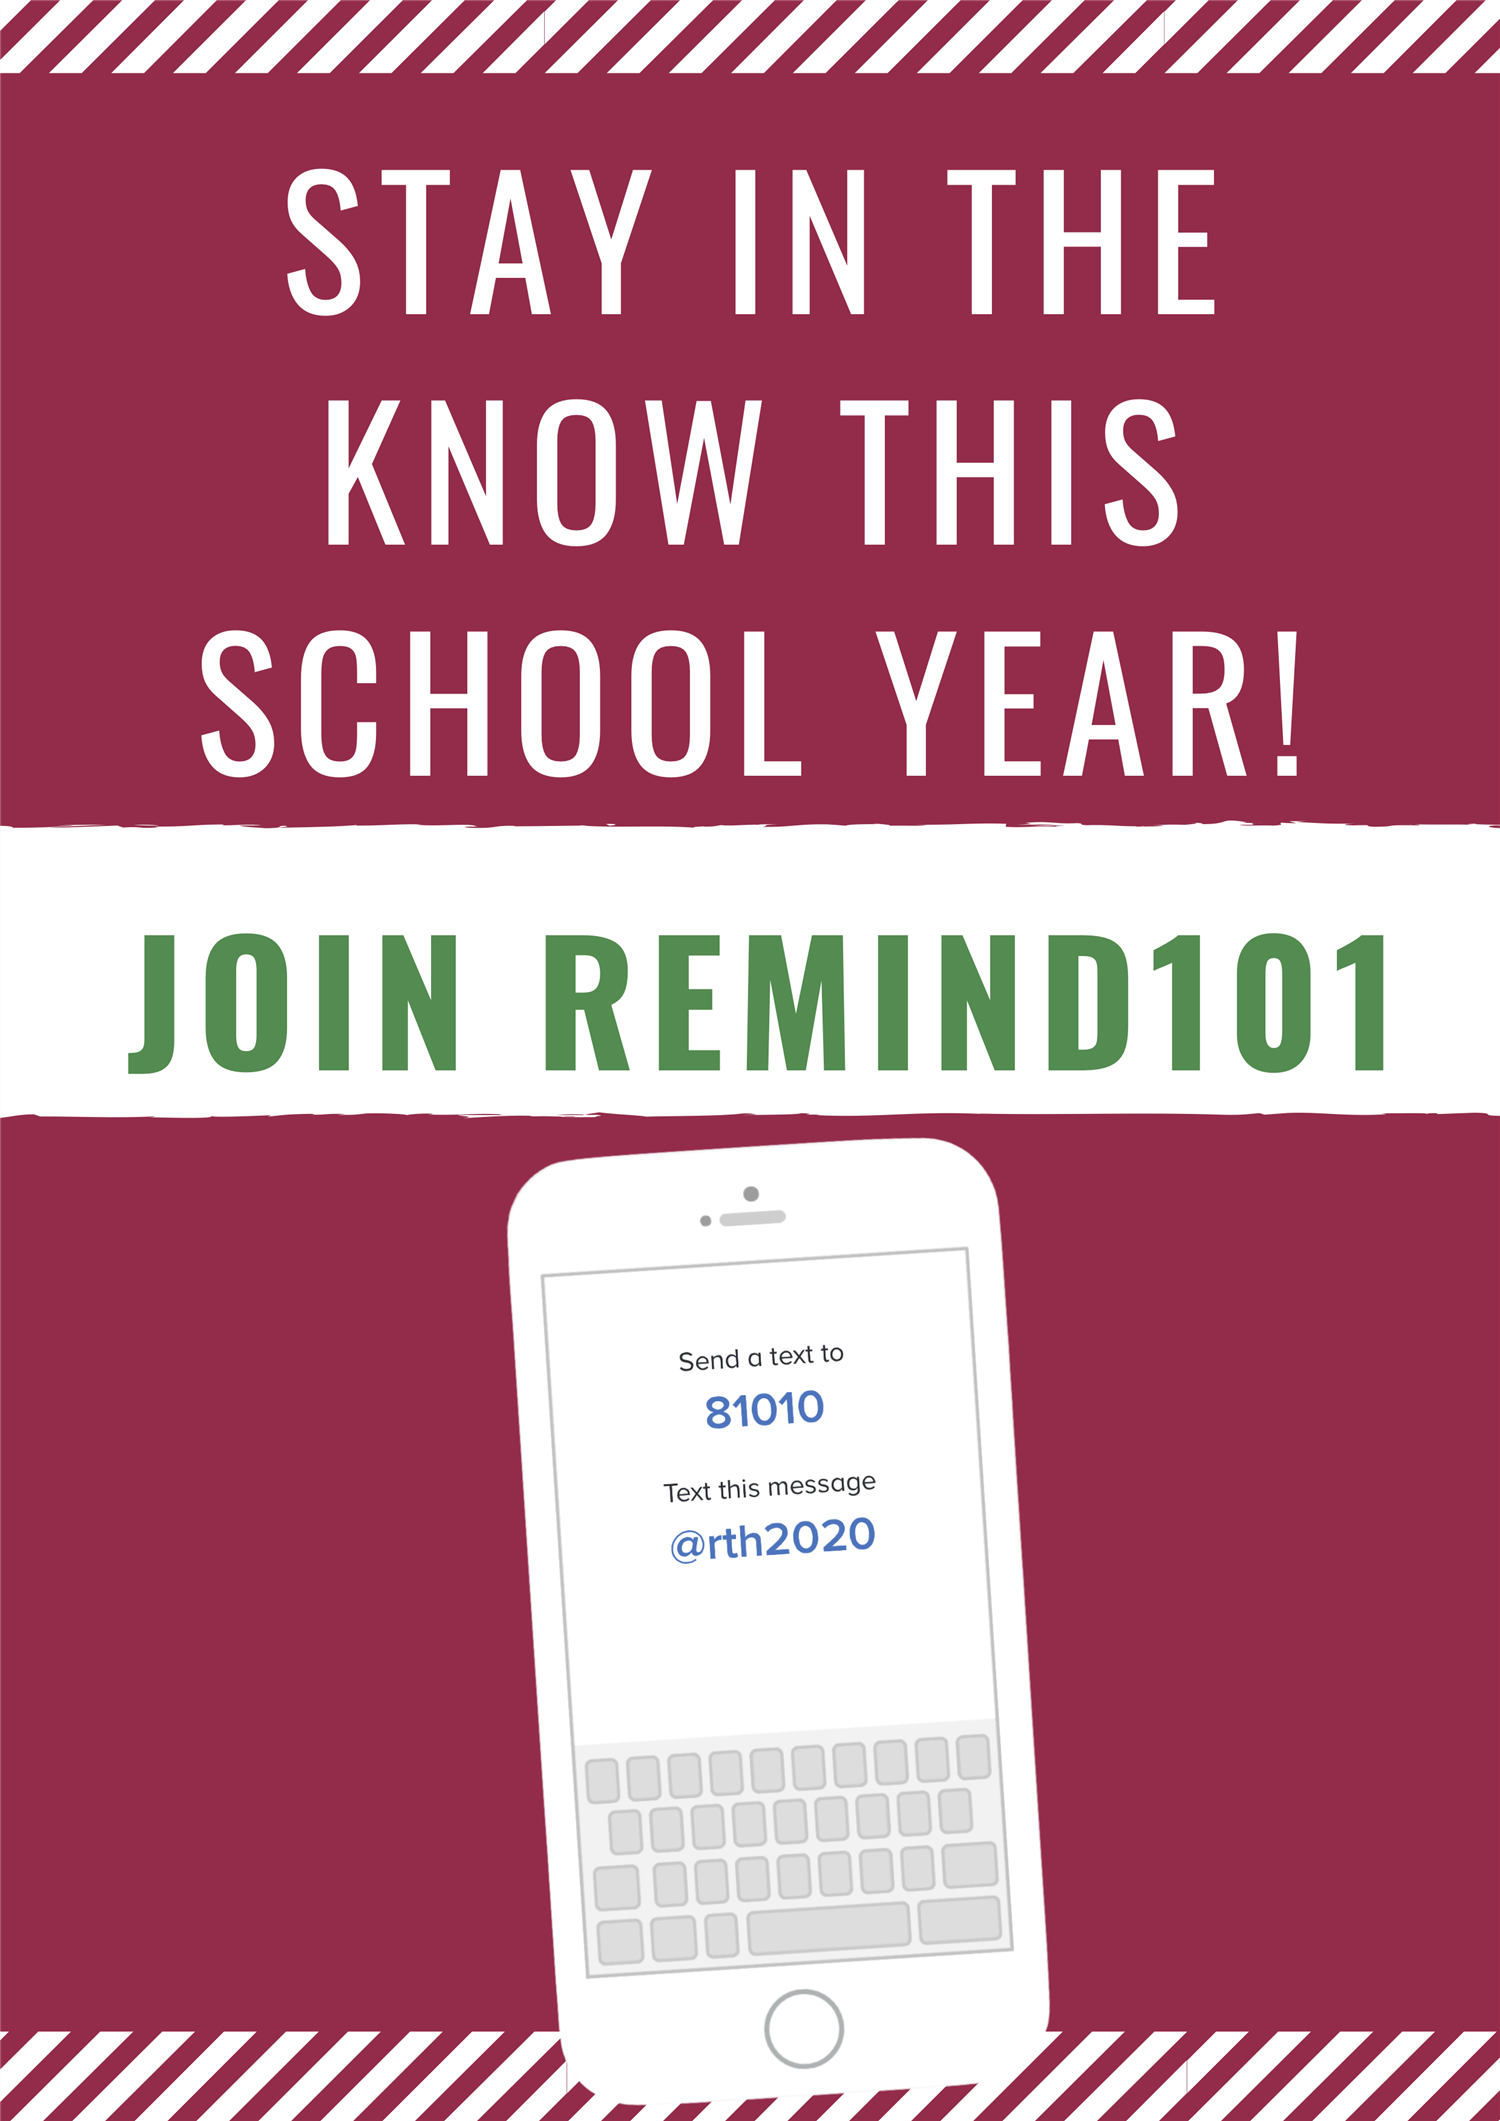 Sign Up for Remind 101